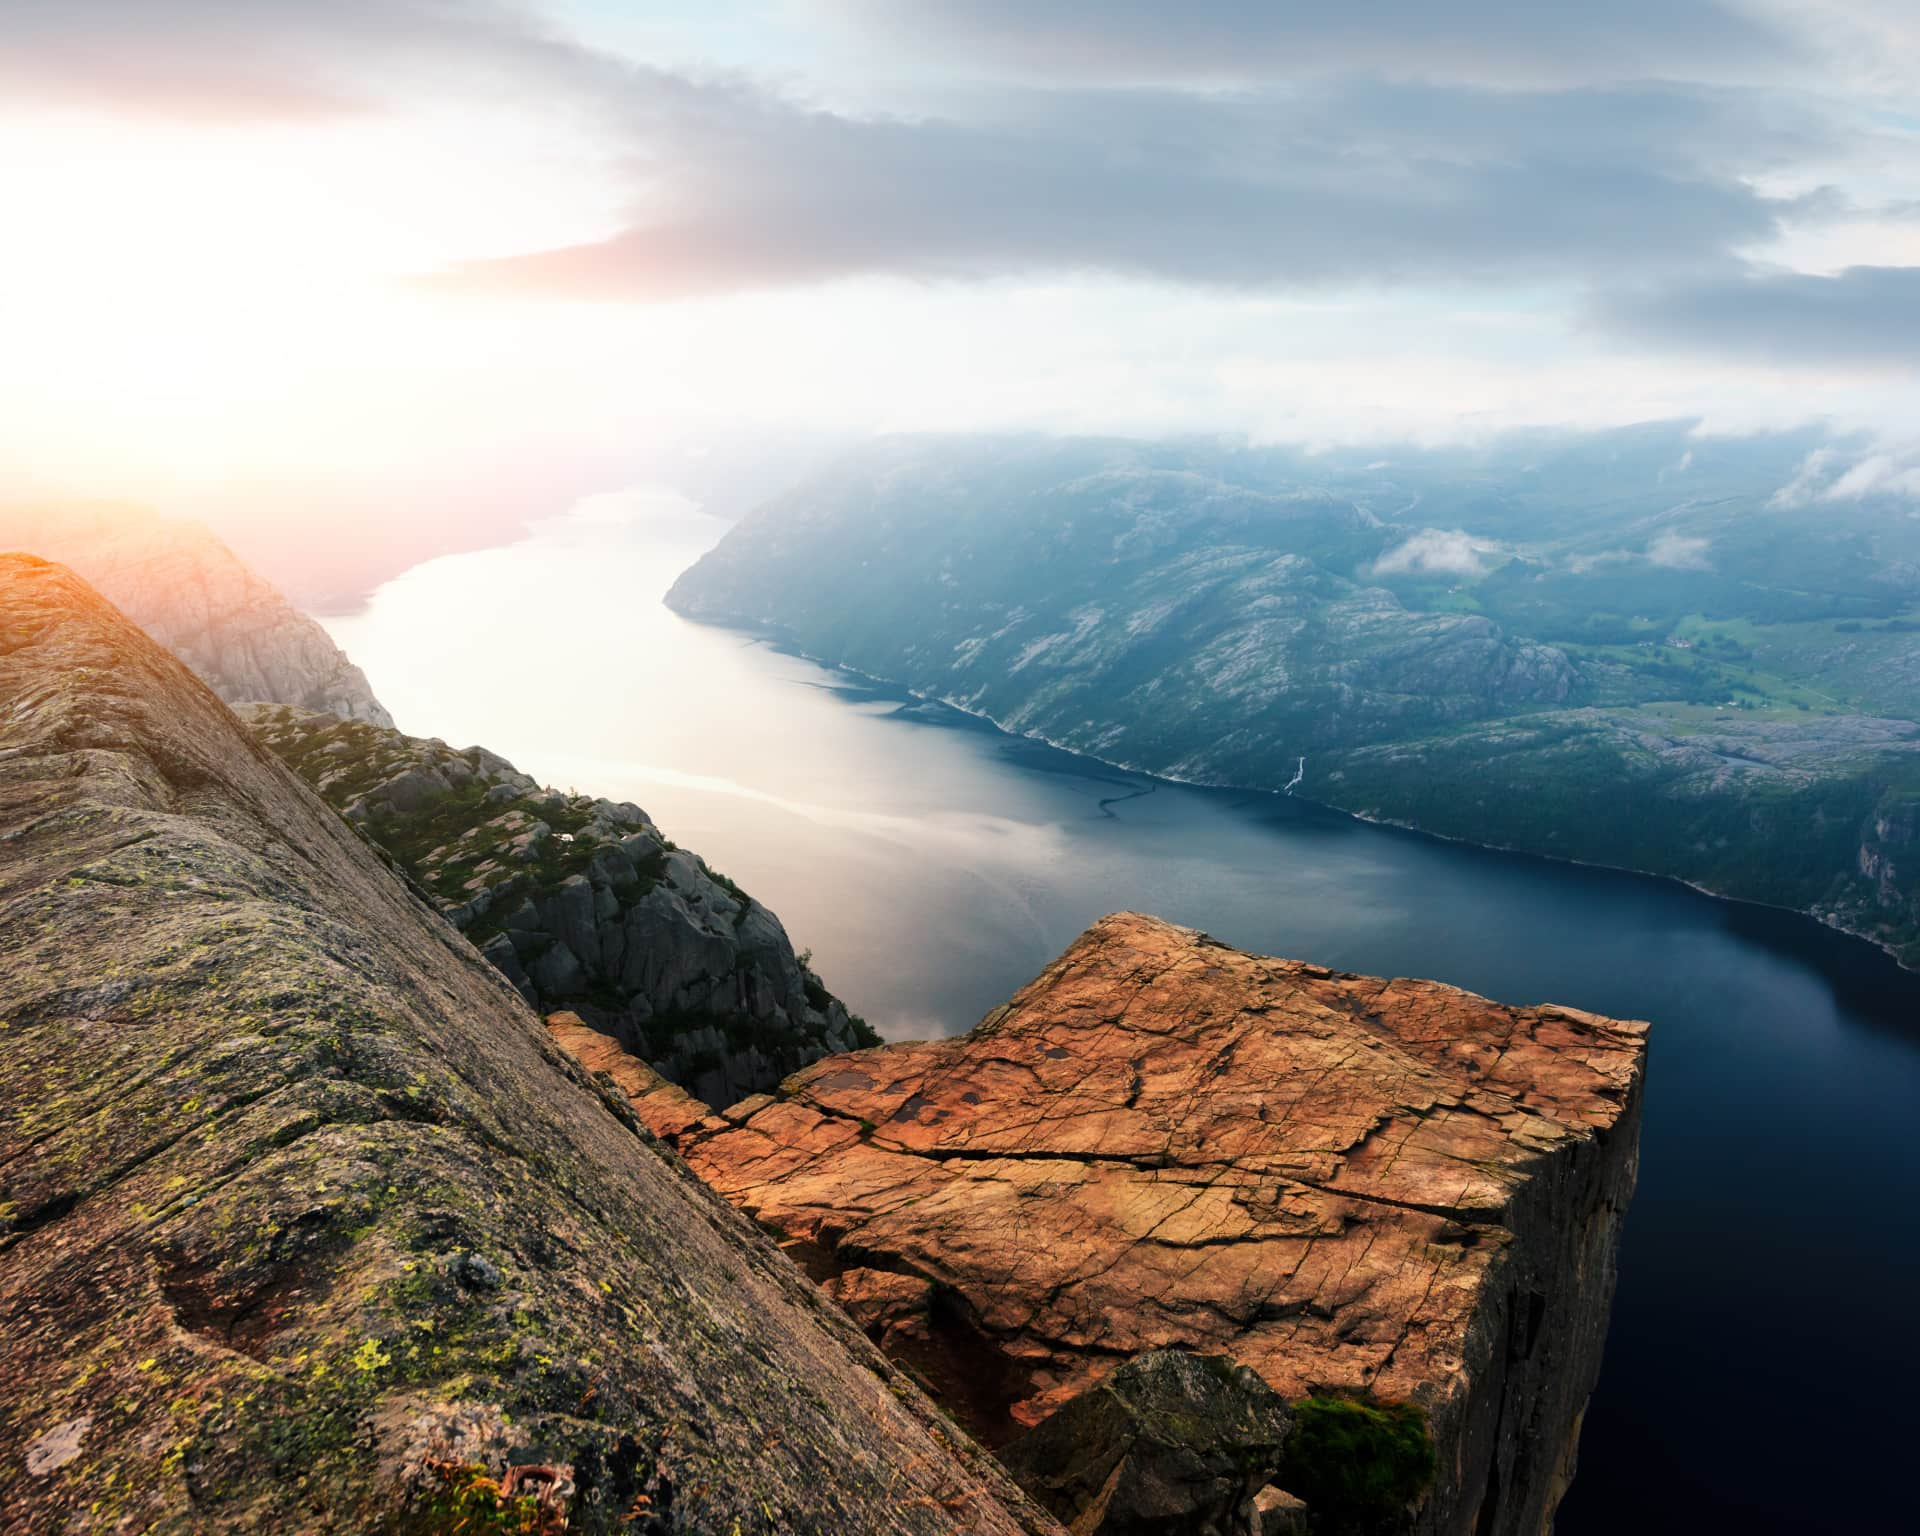 Colourful sunrise on Preikestolen (pulpit-rock) - famous tourist attraction in the municipality of Forsand in Rogaland county, Norway.